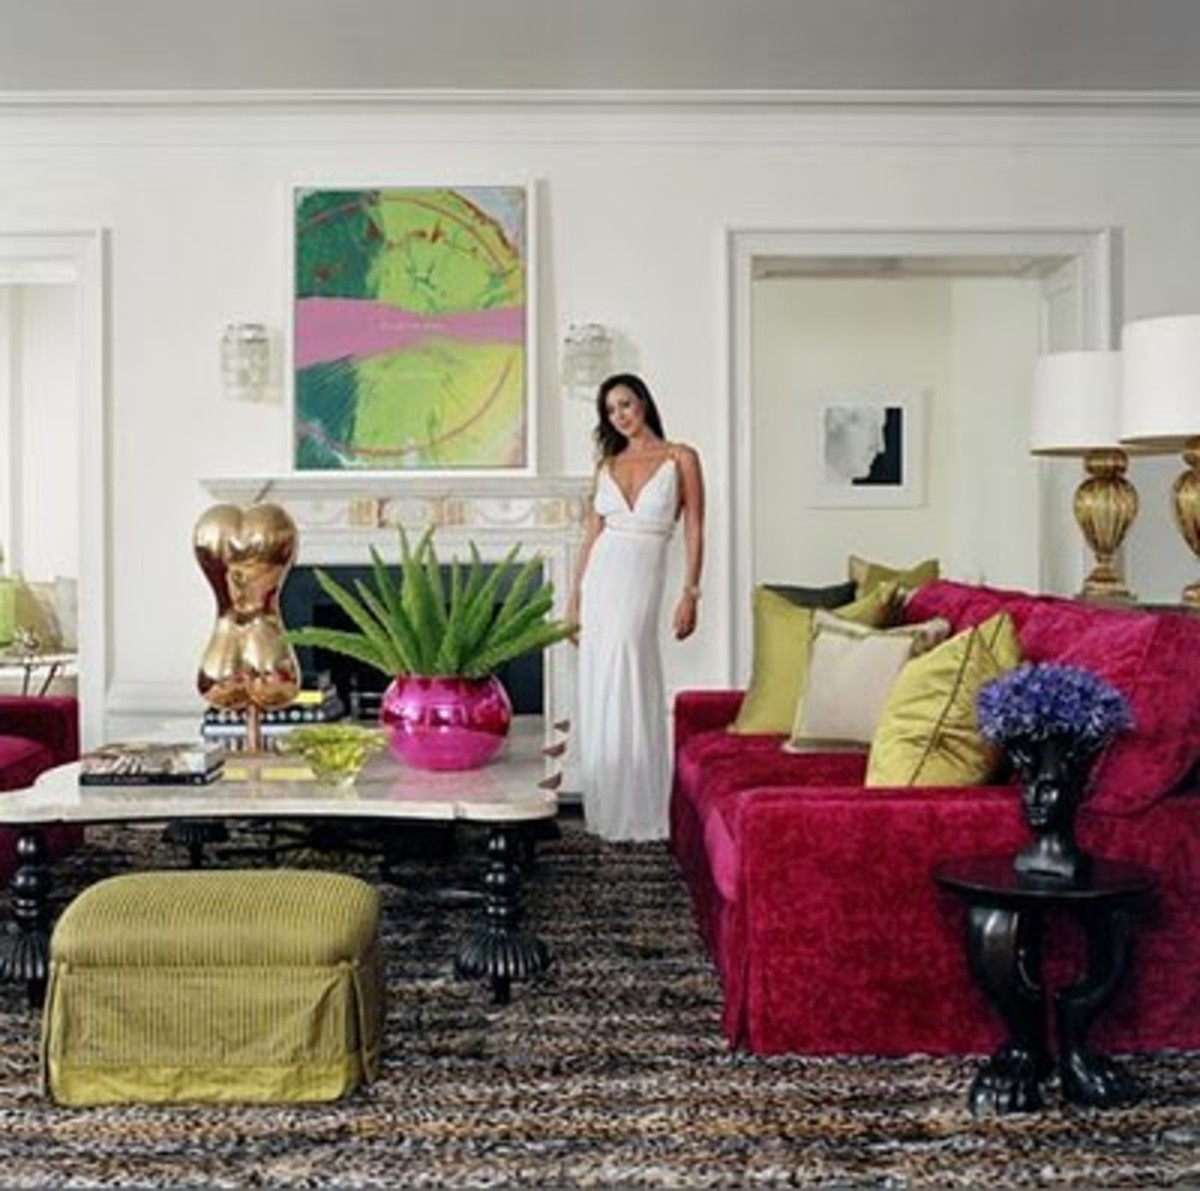 Tamara Mellon, founder of Jimmy Choo shoes, in her Nottingham apartment.